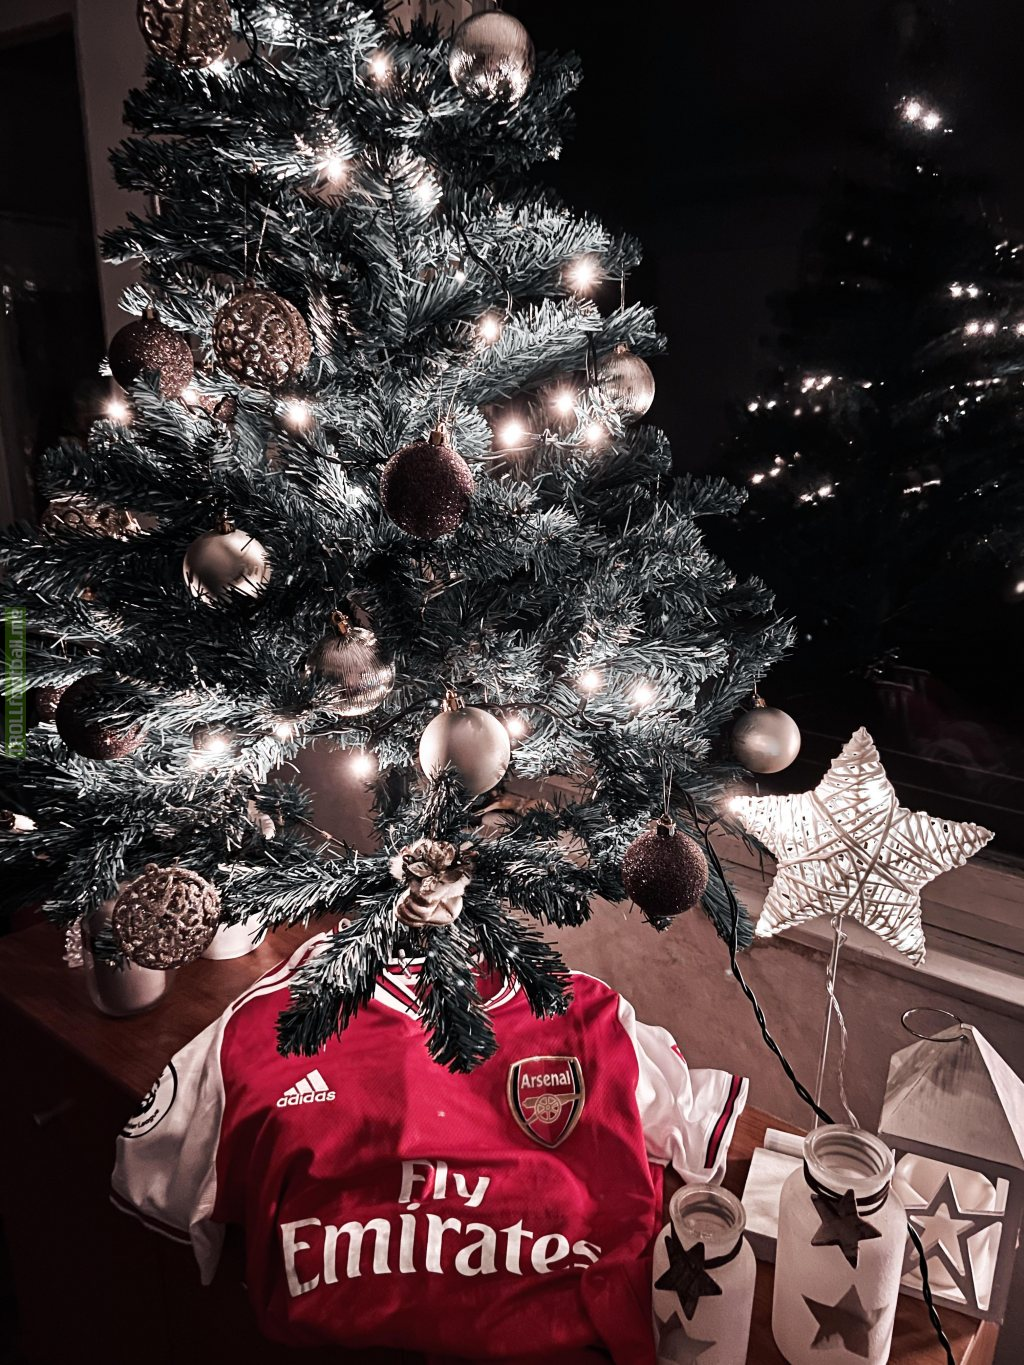 Merry Christmas to the whole football community from an Arsenal fan in Croatia 🇭🇷